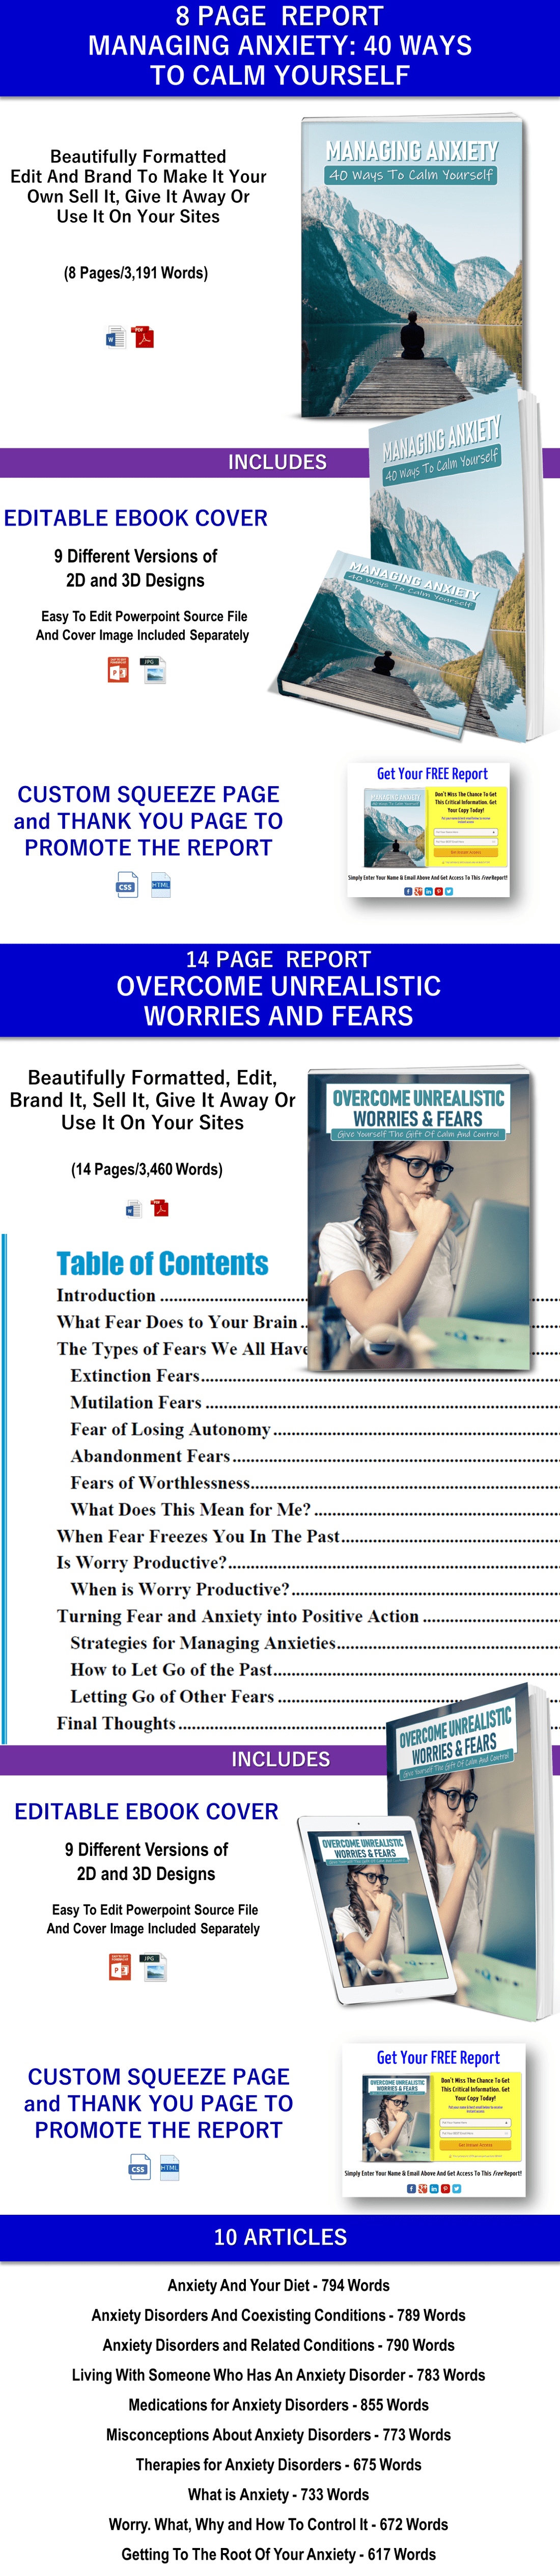 Manage Anxiety PLR